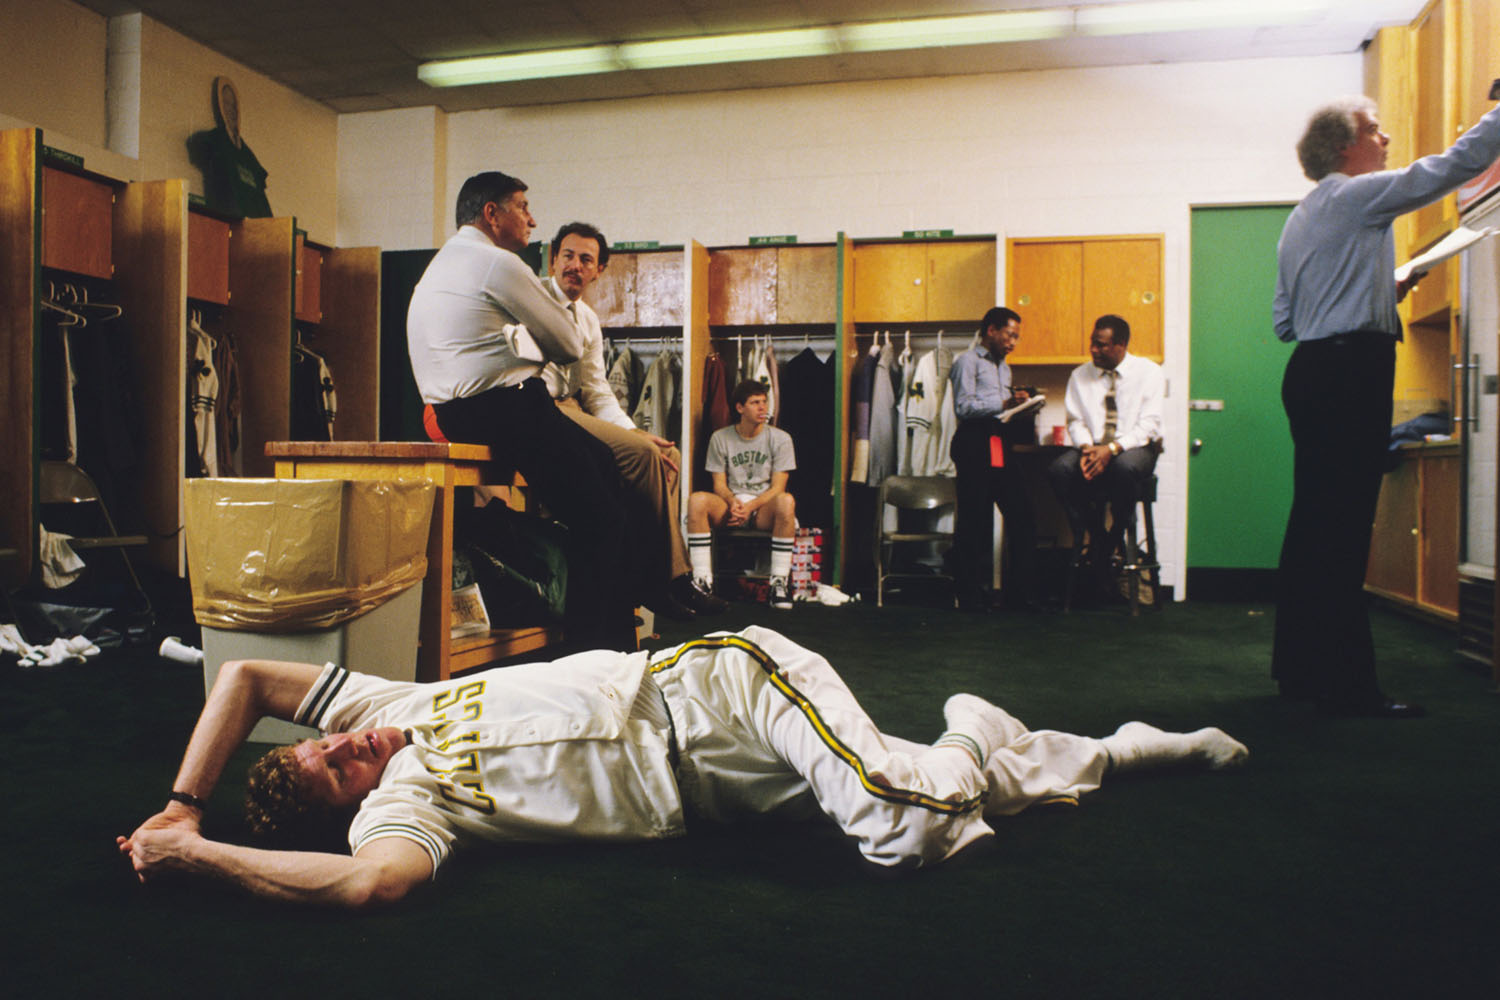 Bill Walton stretches out his back in the locker room before a game on January 22, 1986 in Boston, Massachusetts.